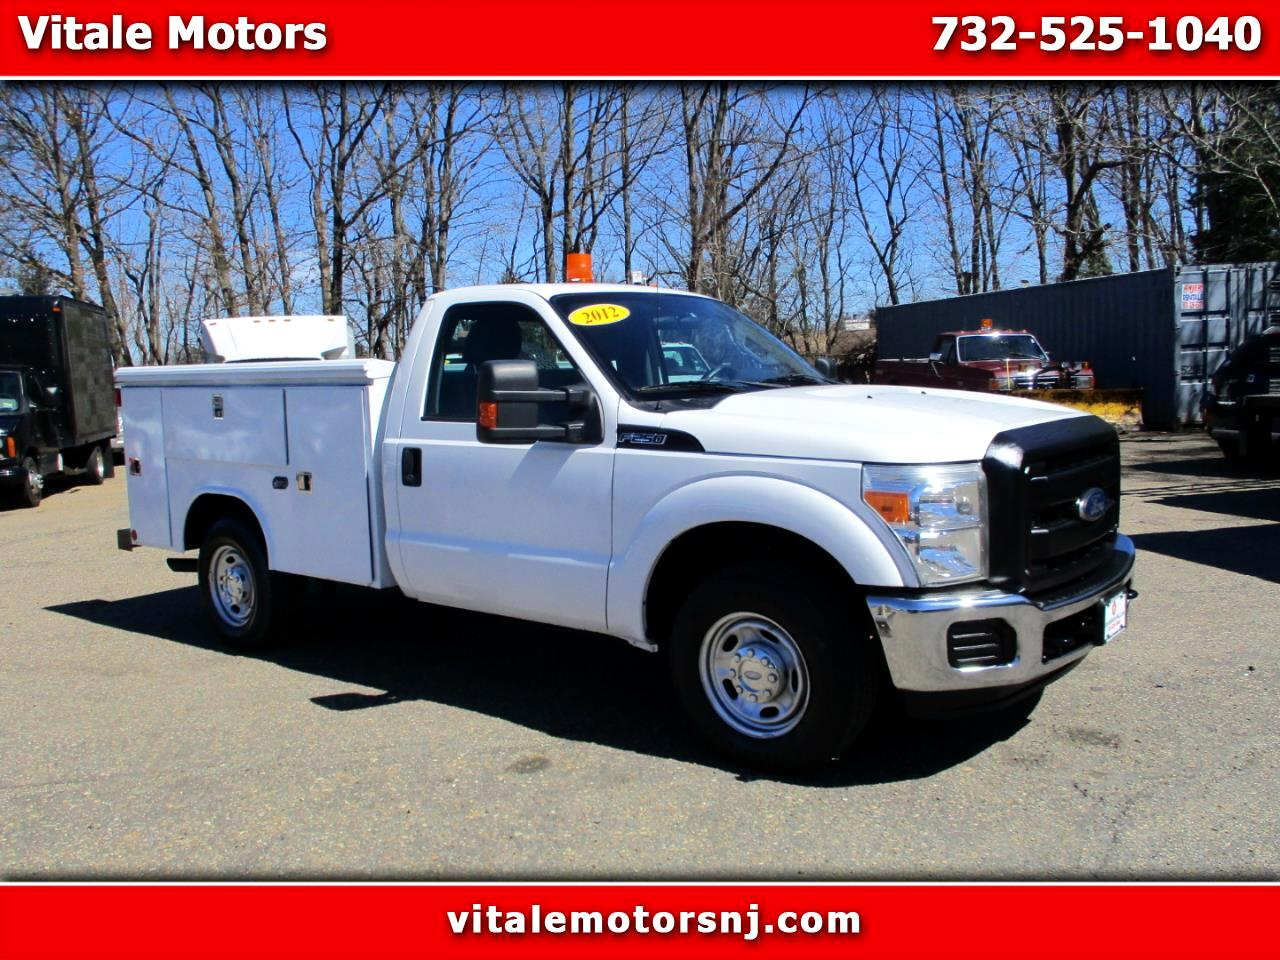 2012 Ford F-250 SD REG. CAB UTILITY BODY